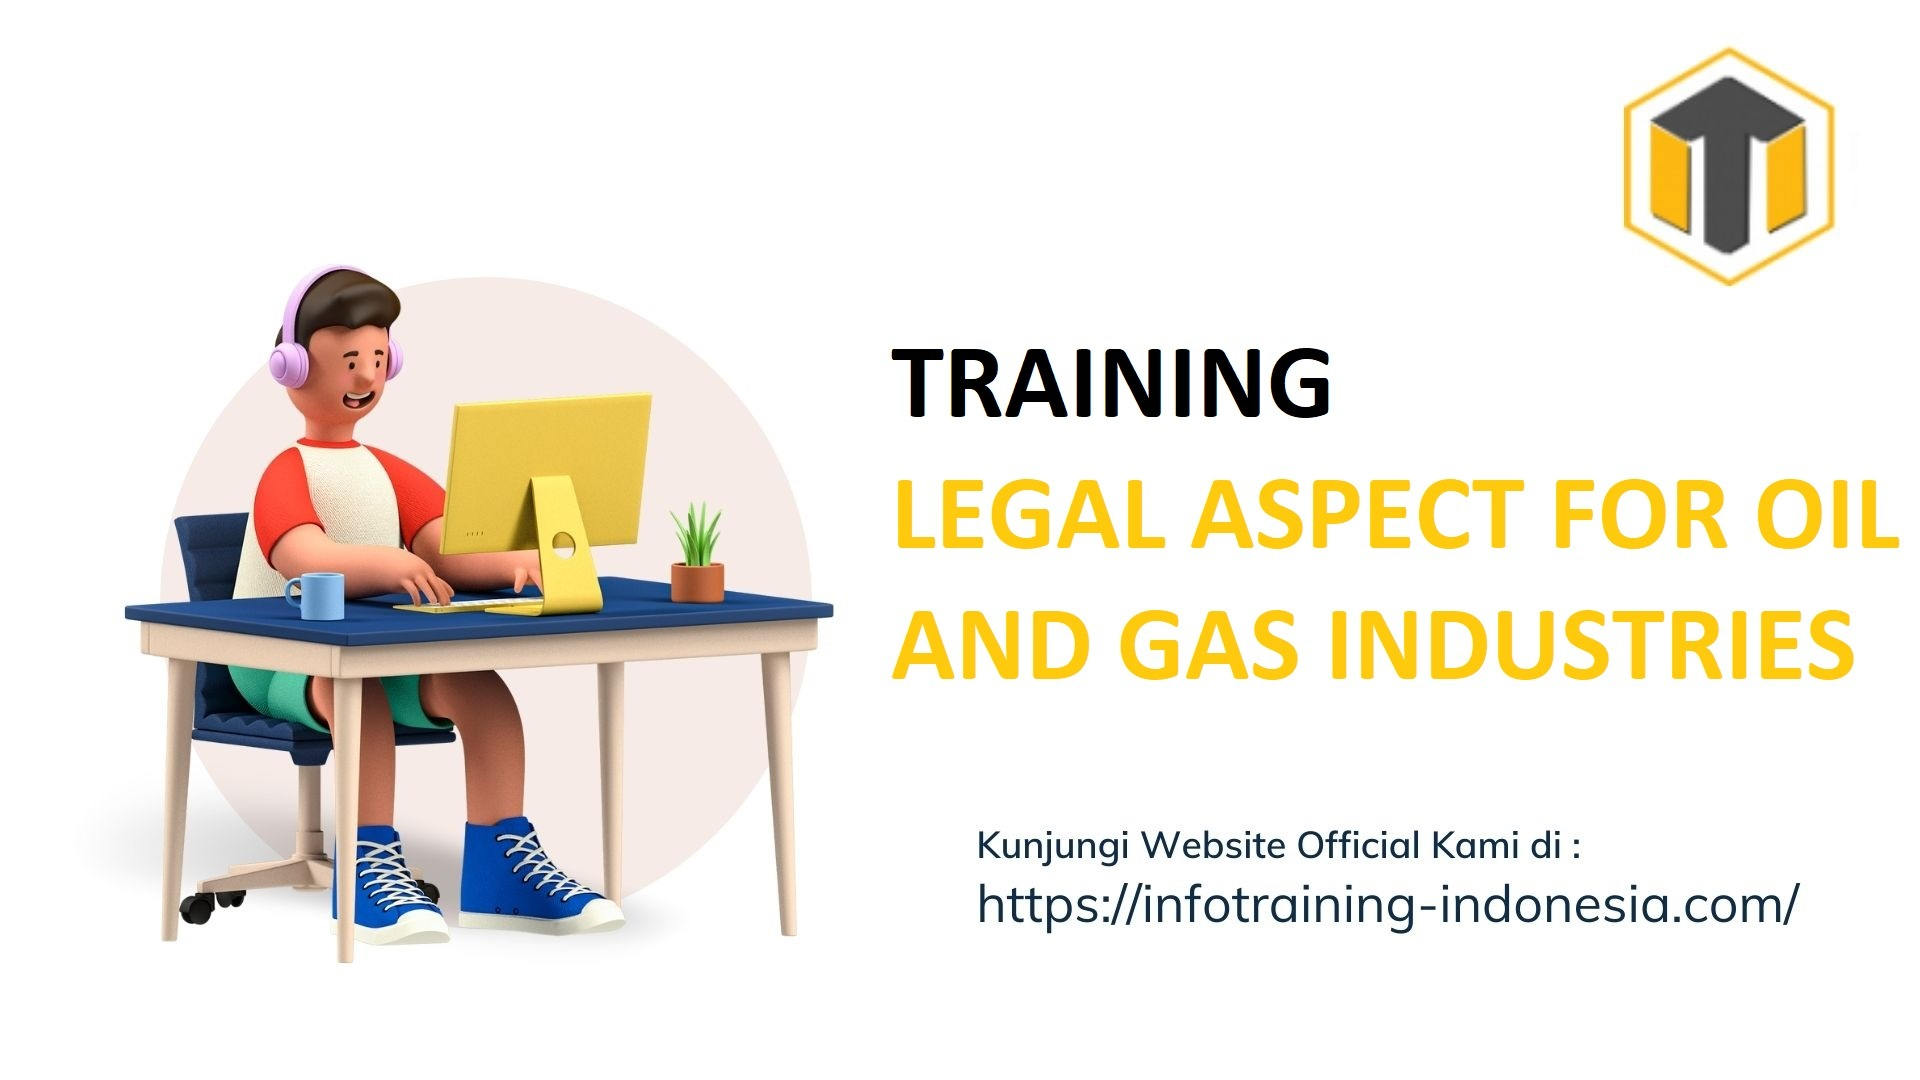 TRAINING LEGAL ASPECT FOR OIL AND GAS INDUSTRIES Pengelolaan Lingkungan